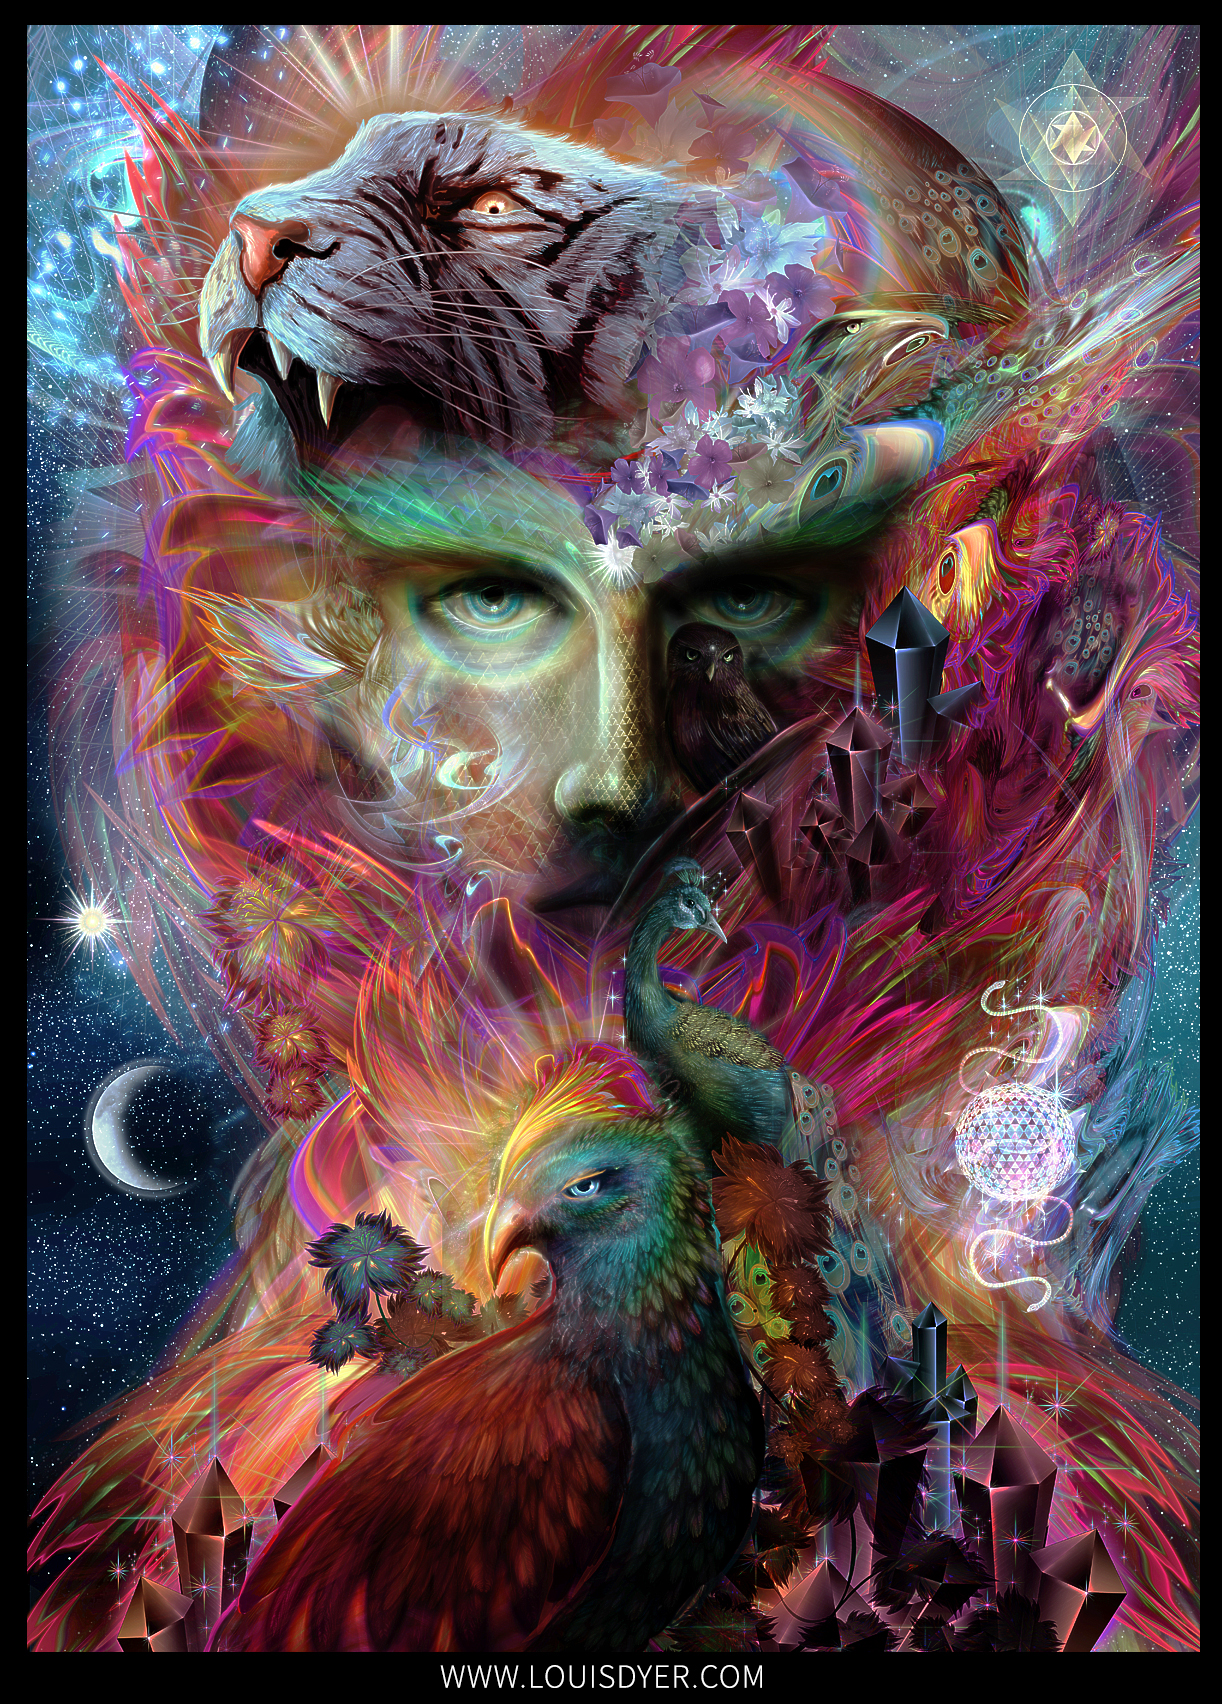 Shape shifter digitalvisionaryart Louis Dyer